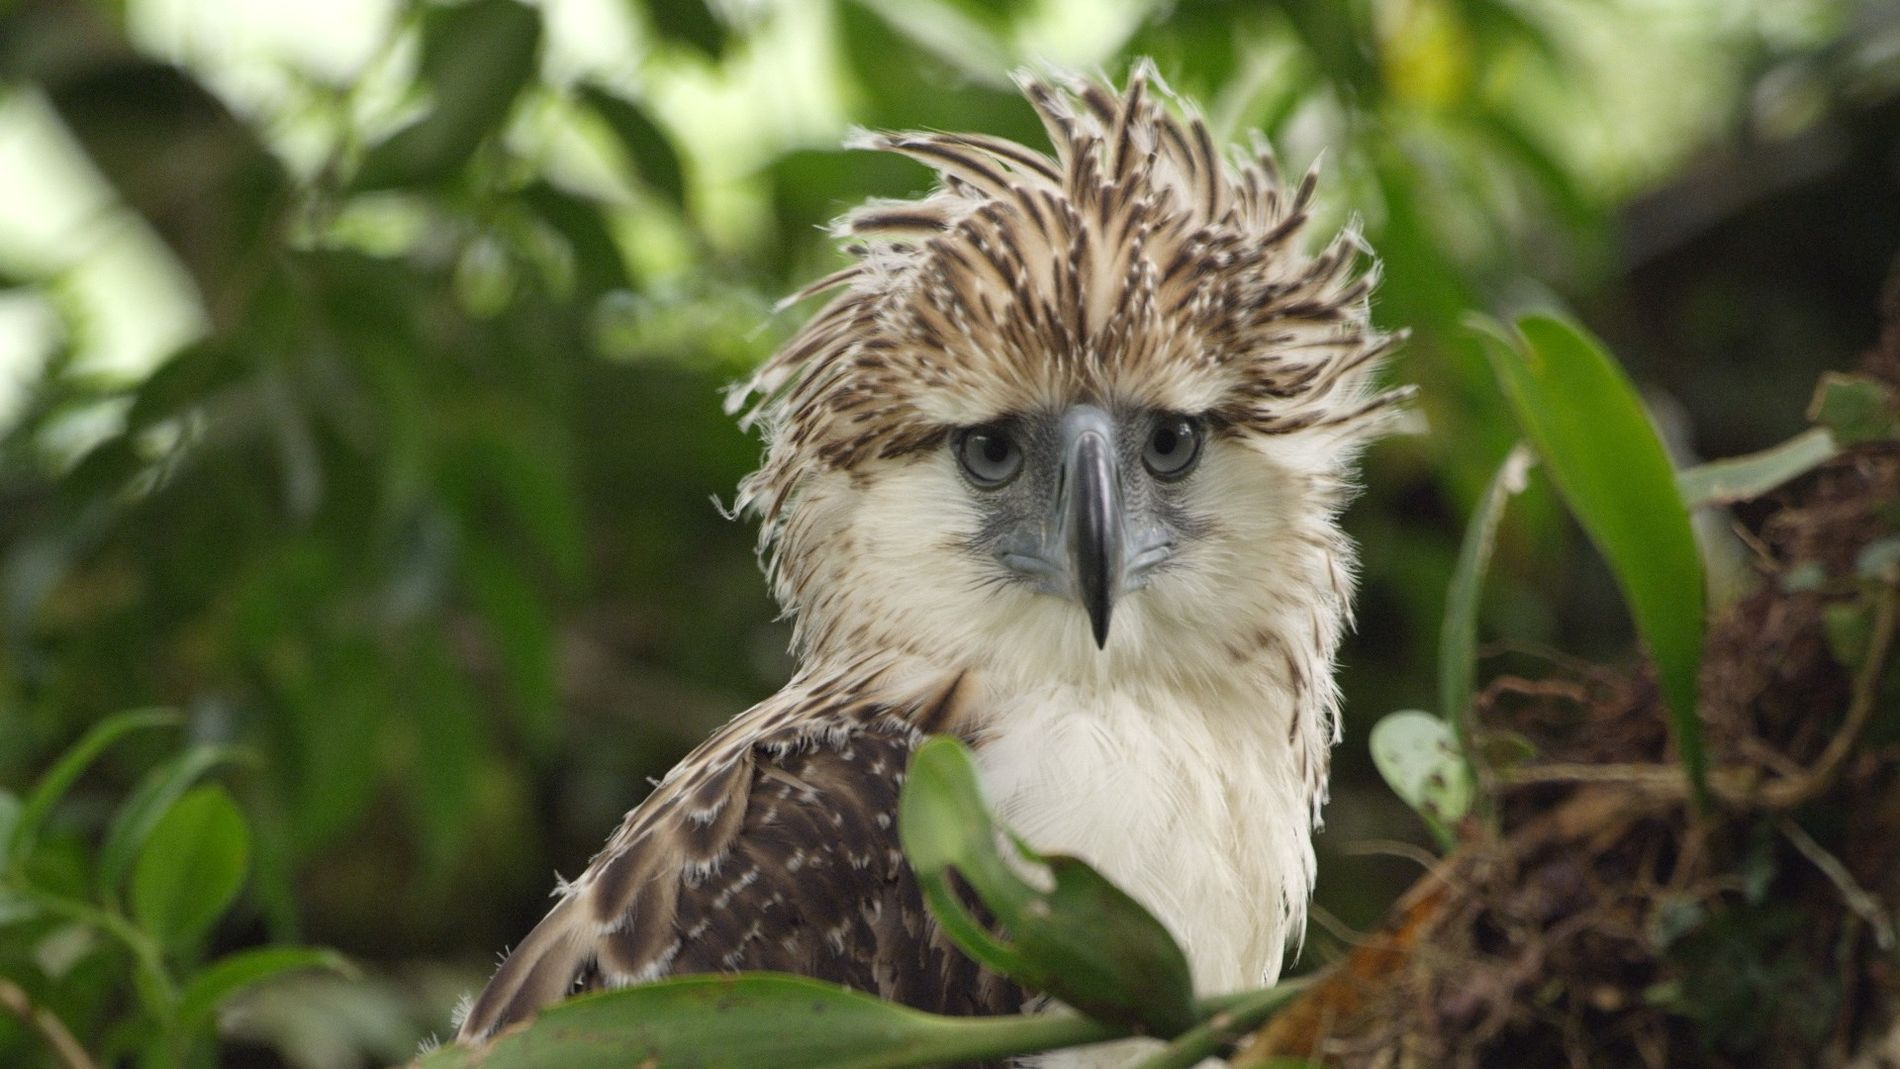 The Story of a Philippine Eagle Chick